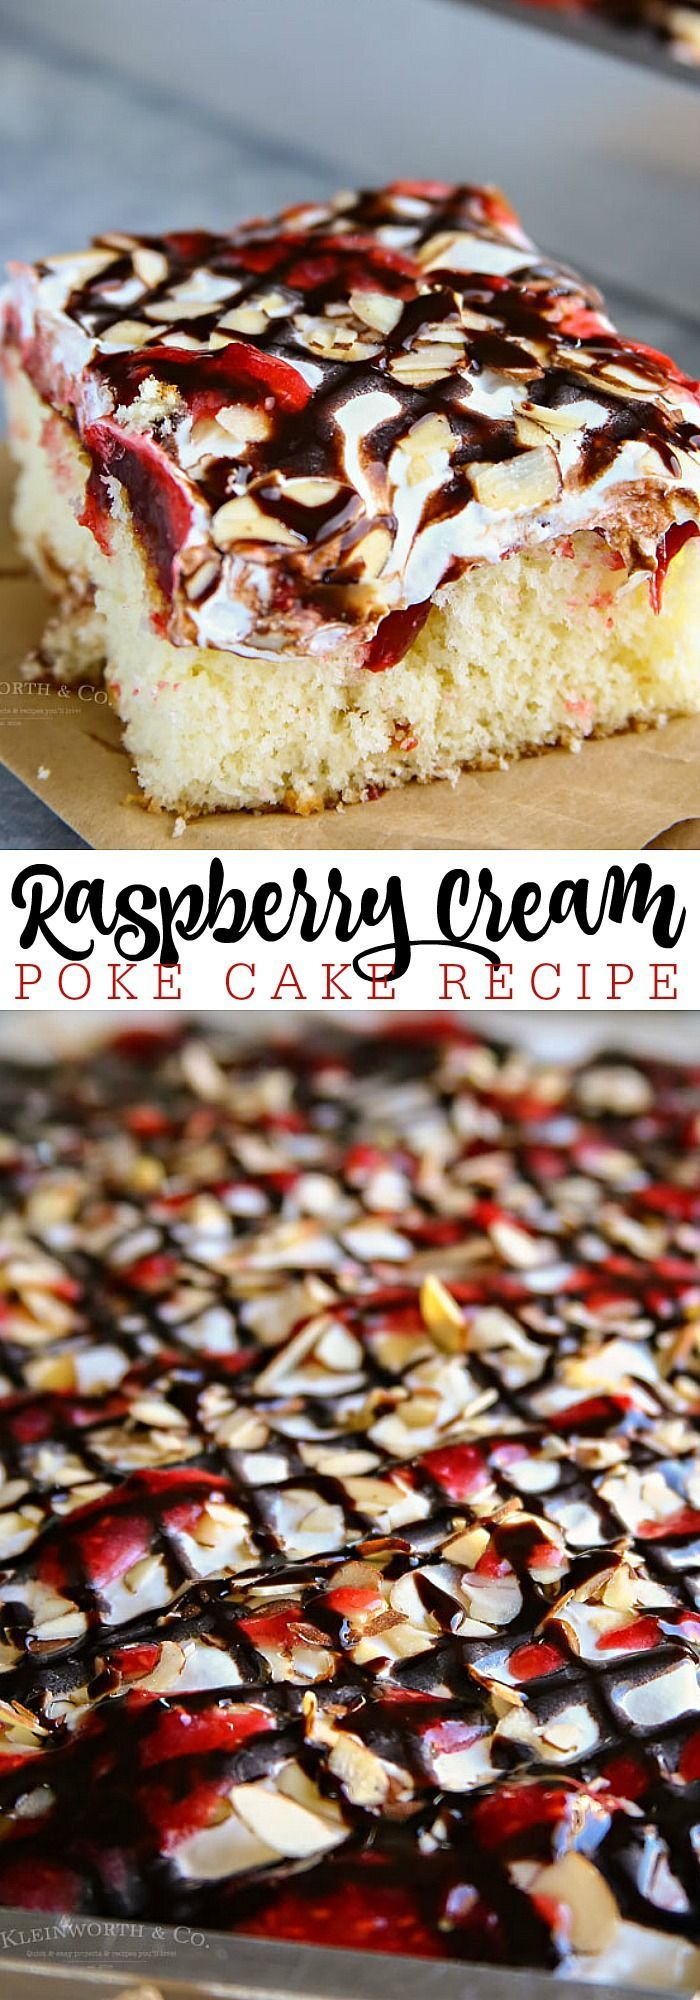 Raspberry Cream Poke Cake - Simple and easy dessert for every holiday or celebration.